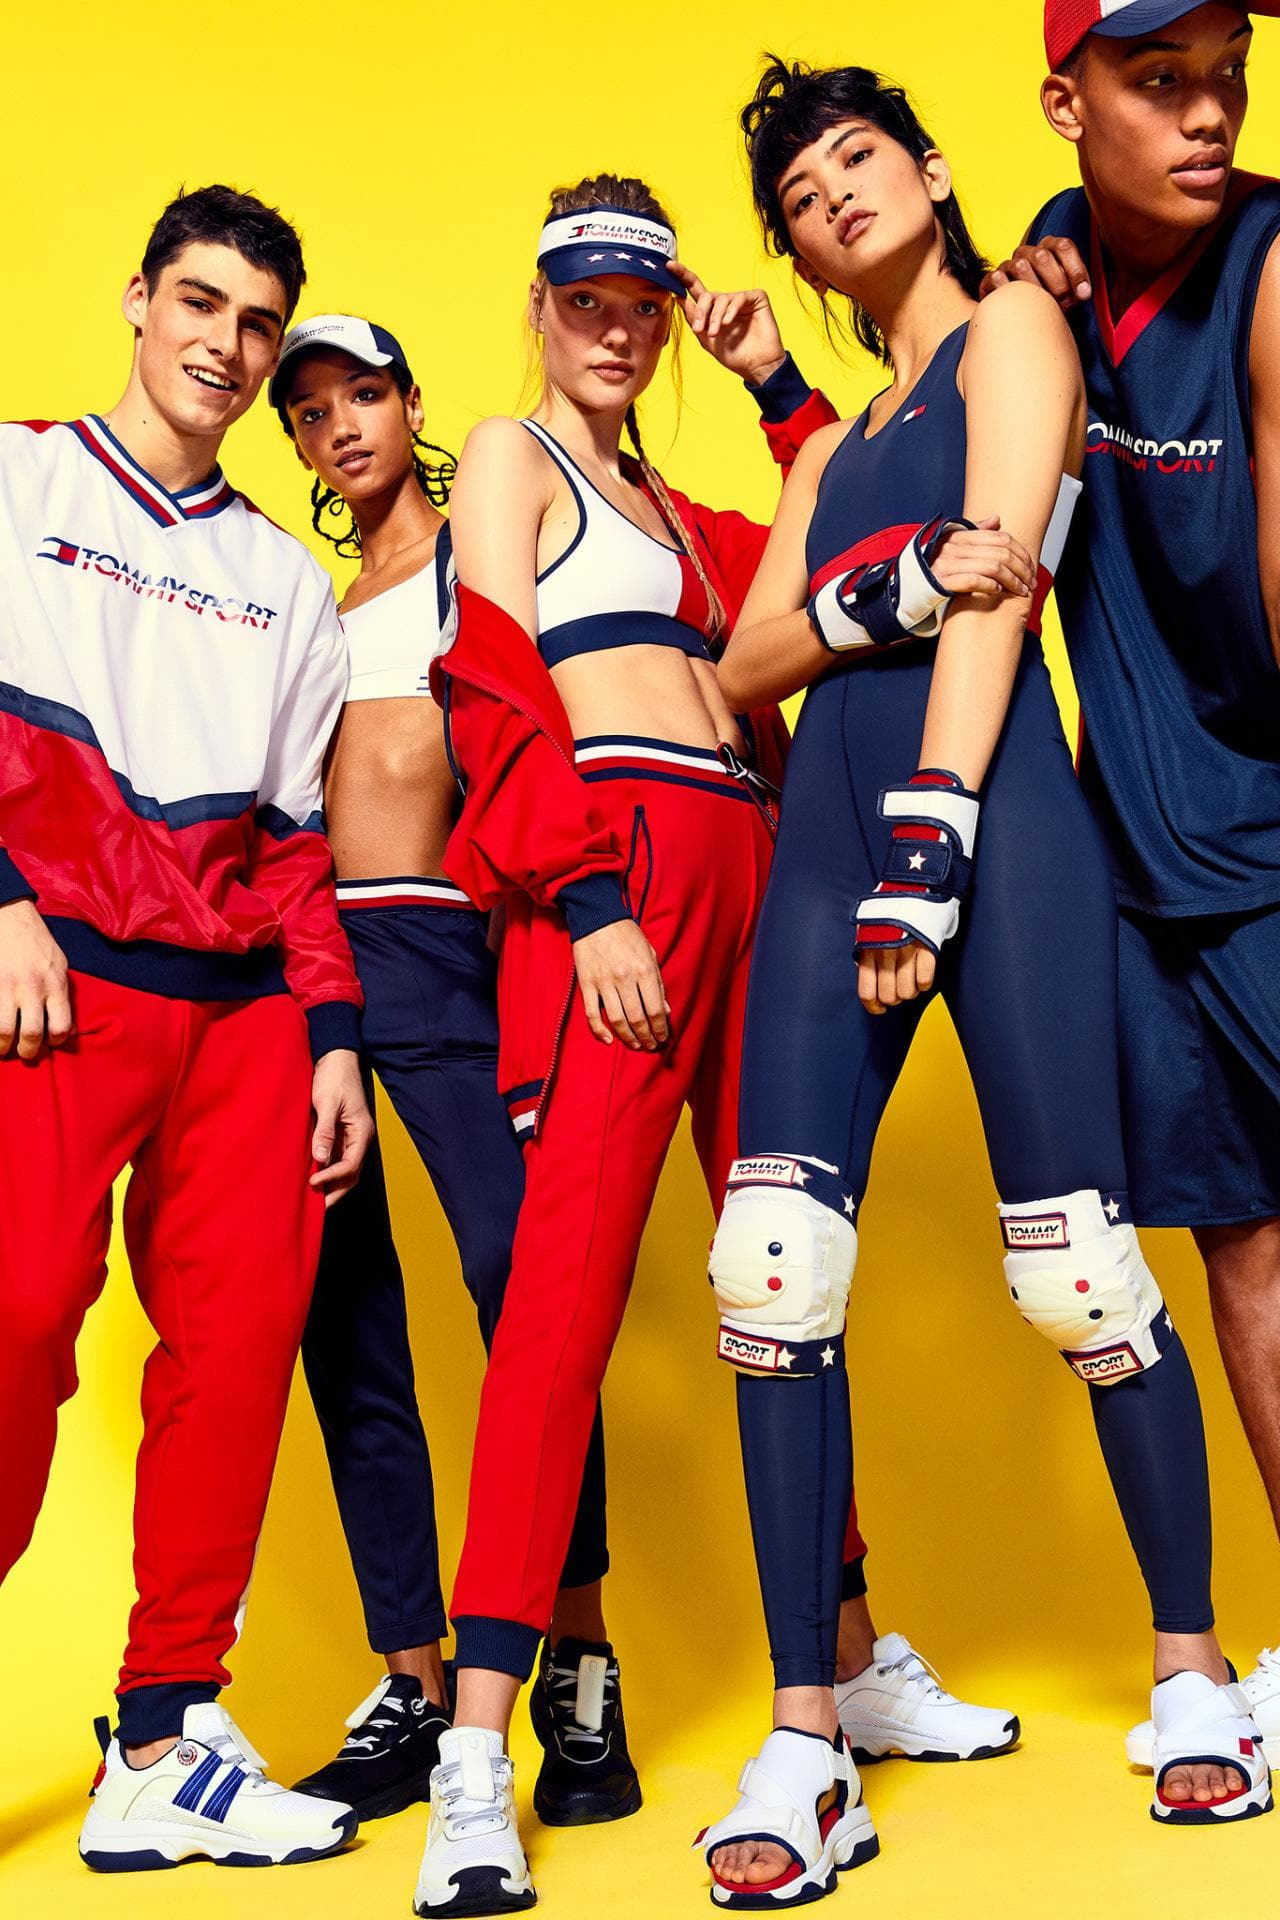 tommy hilfiger clothing brand